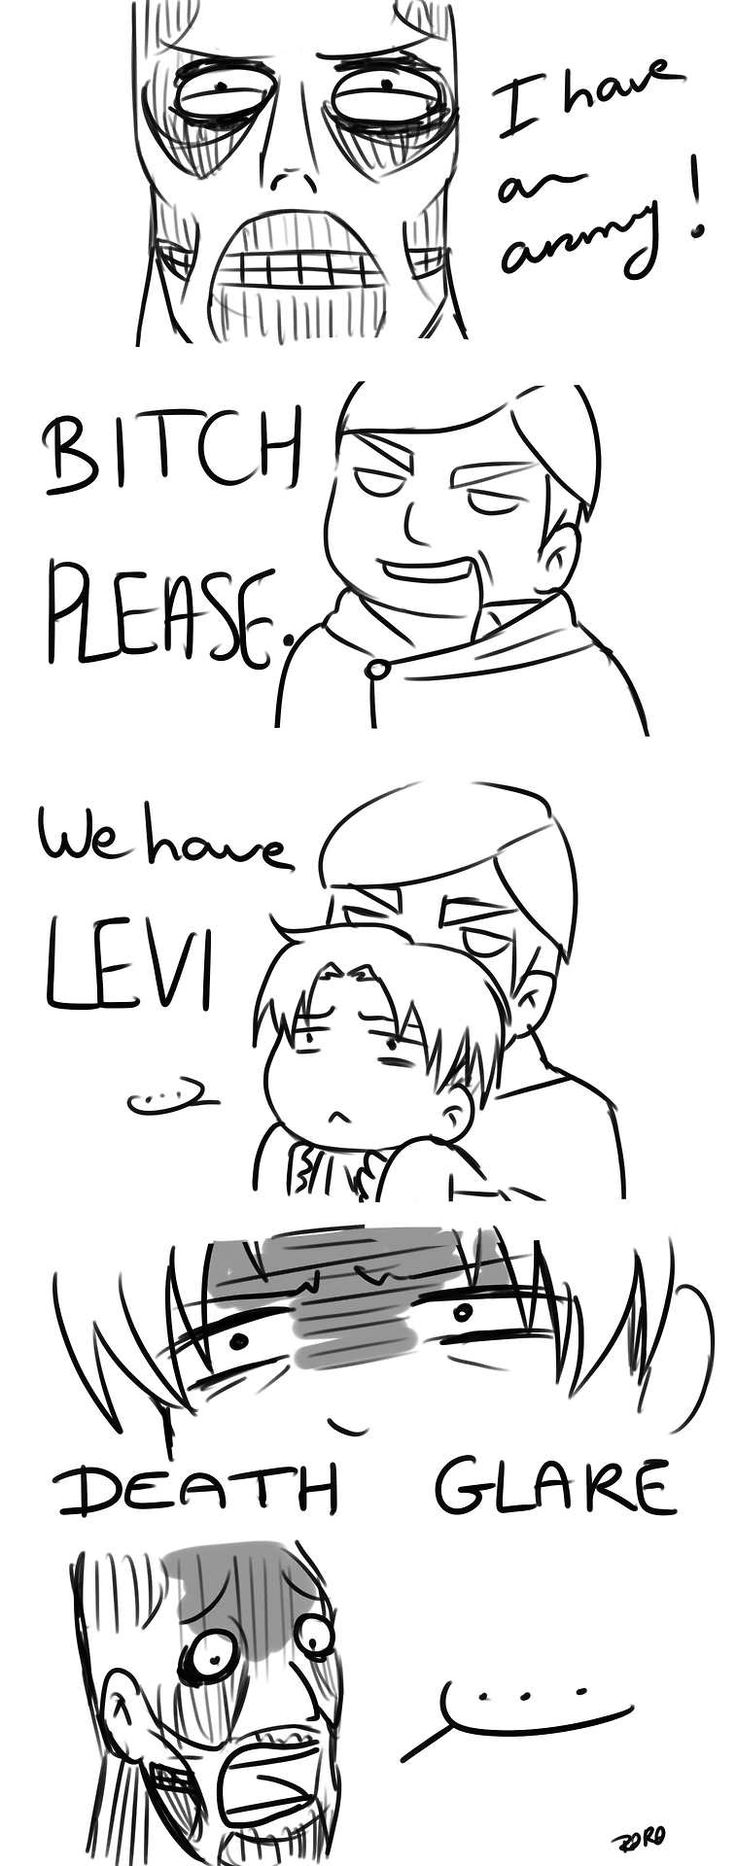 WE HAVE CORPORAL LEVI! Screw that, Colossal Titan! You are nothing in the face of Corporal Shorty!